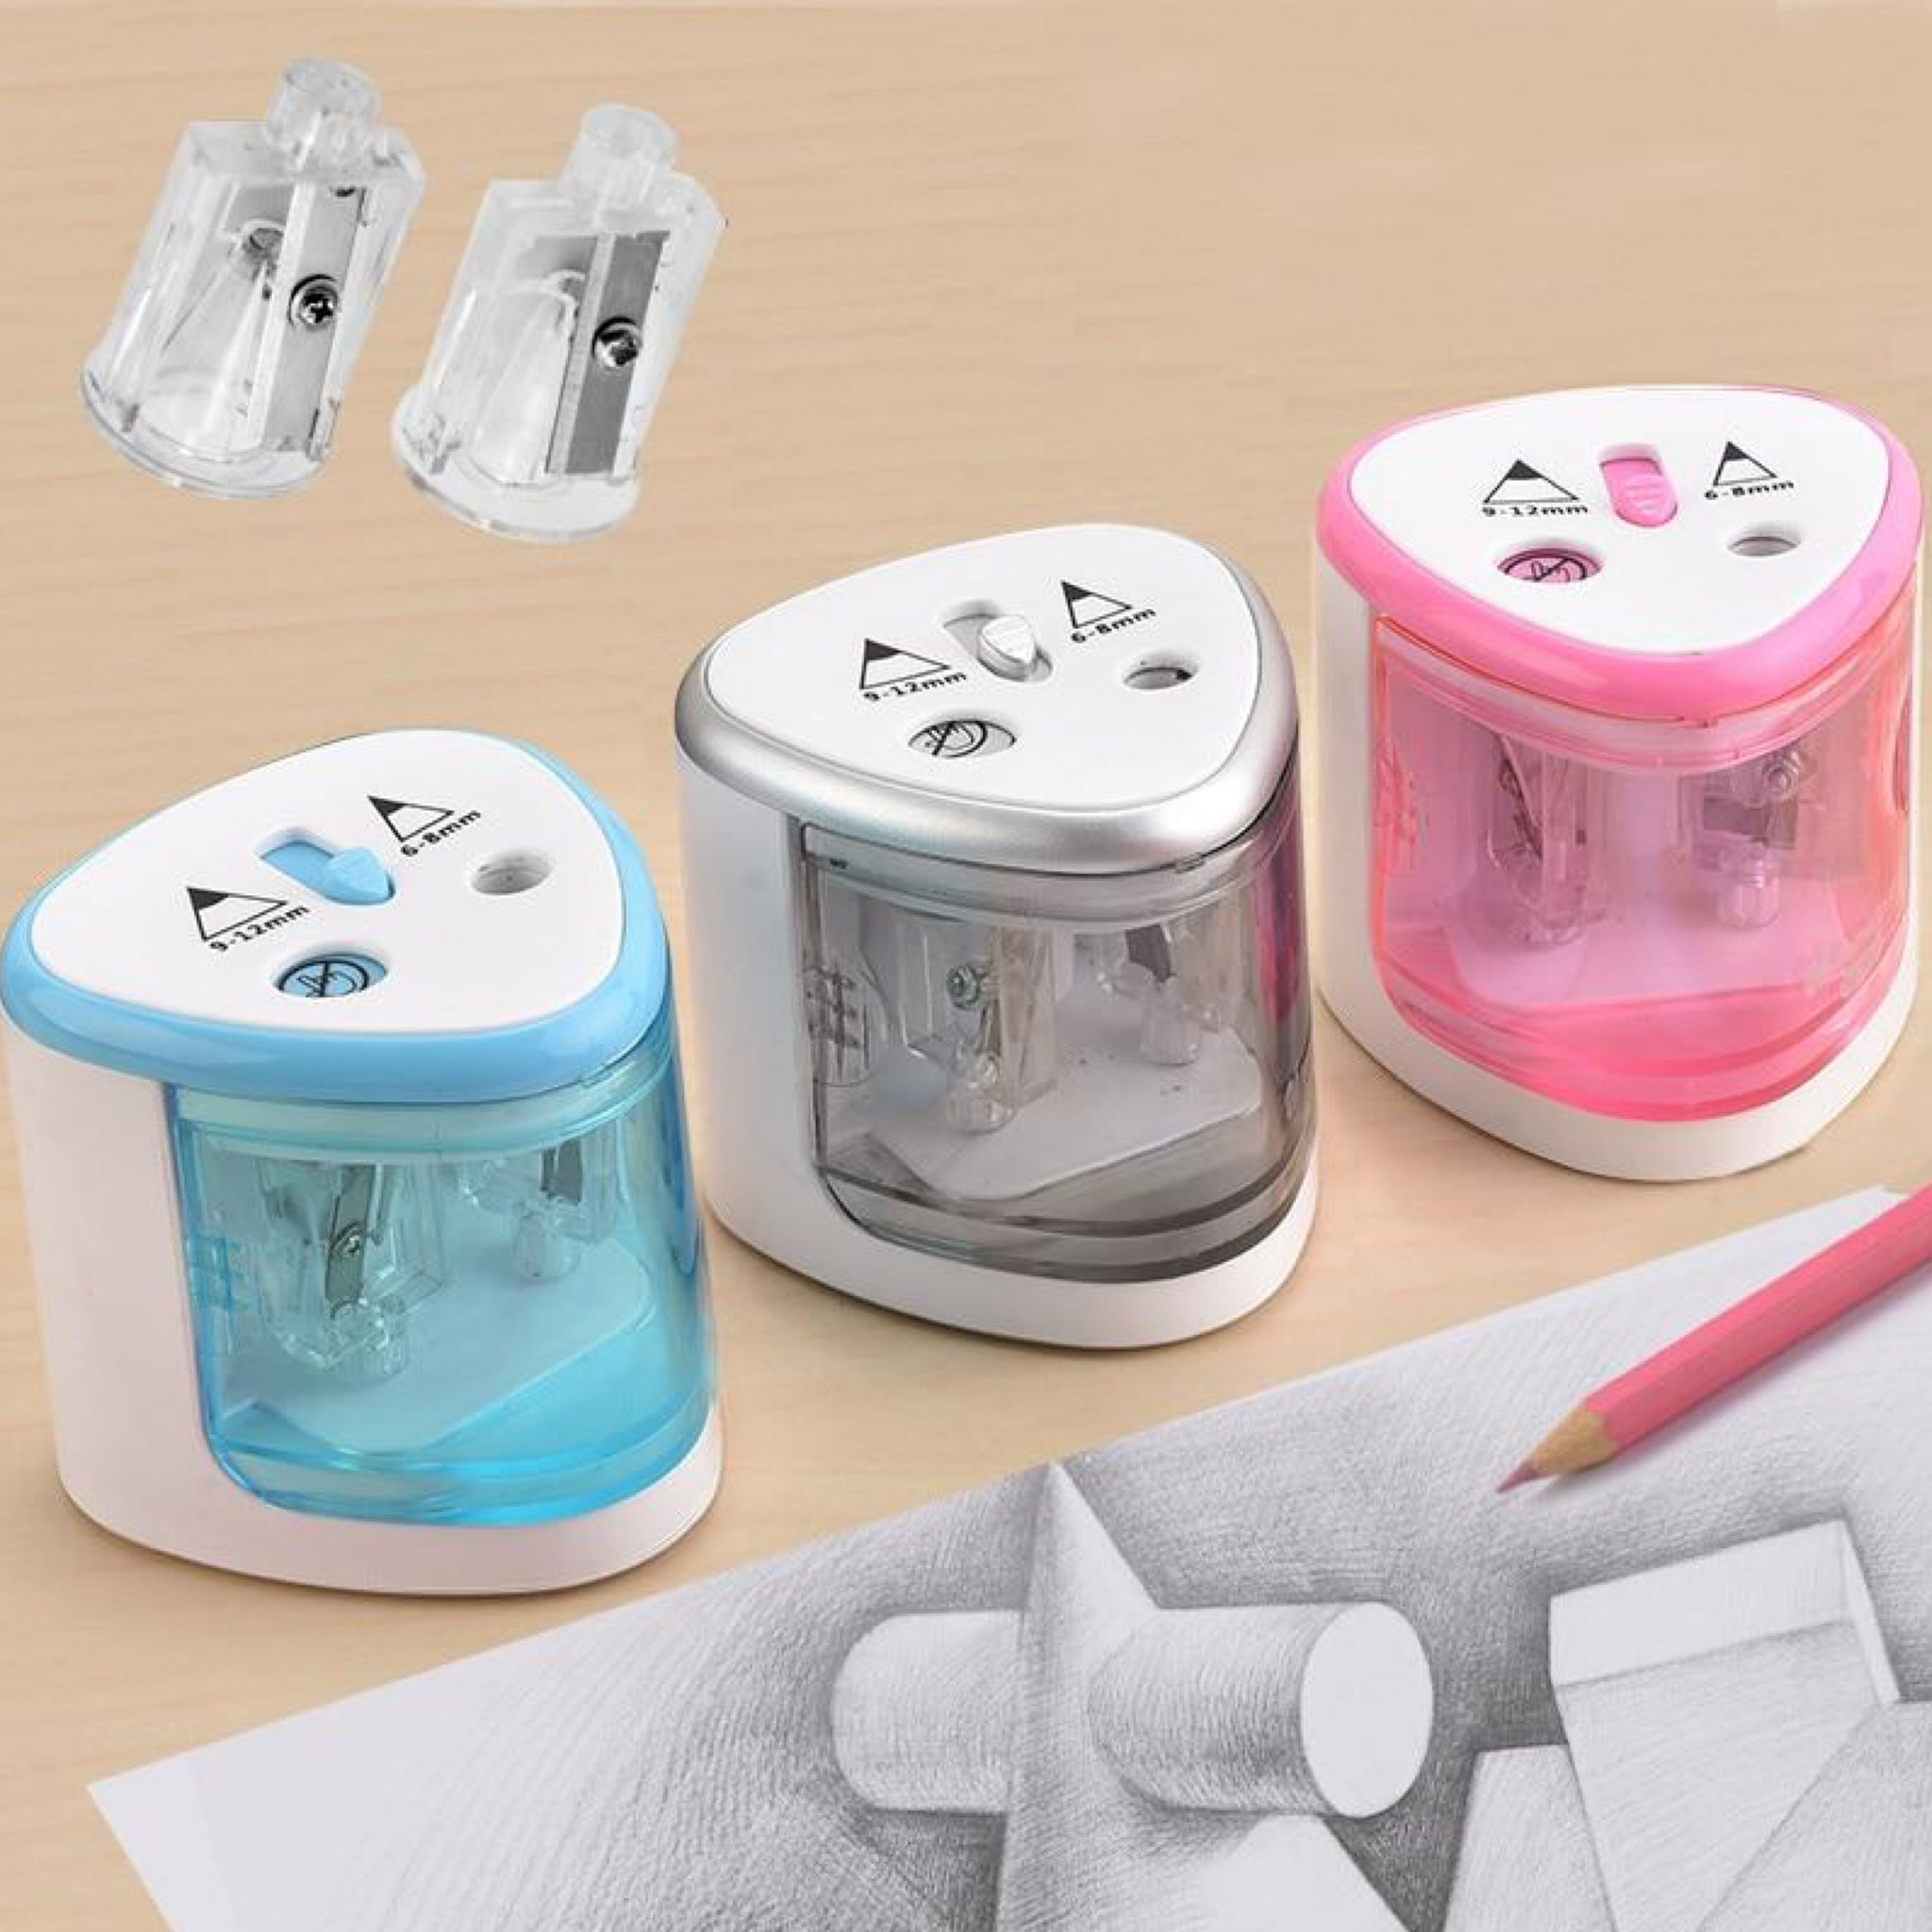 Electric Two Holes Pencil Sharpener Desktop Student Automatic Pencil Sharpeners for Art Painting Stationery Supplies Trend